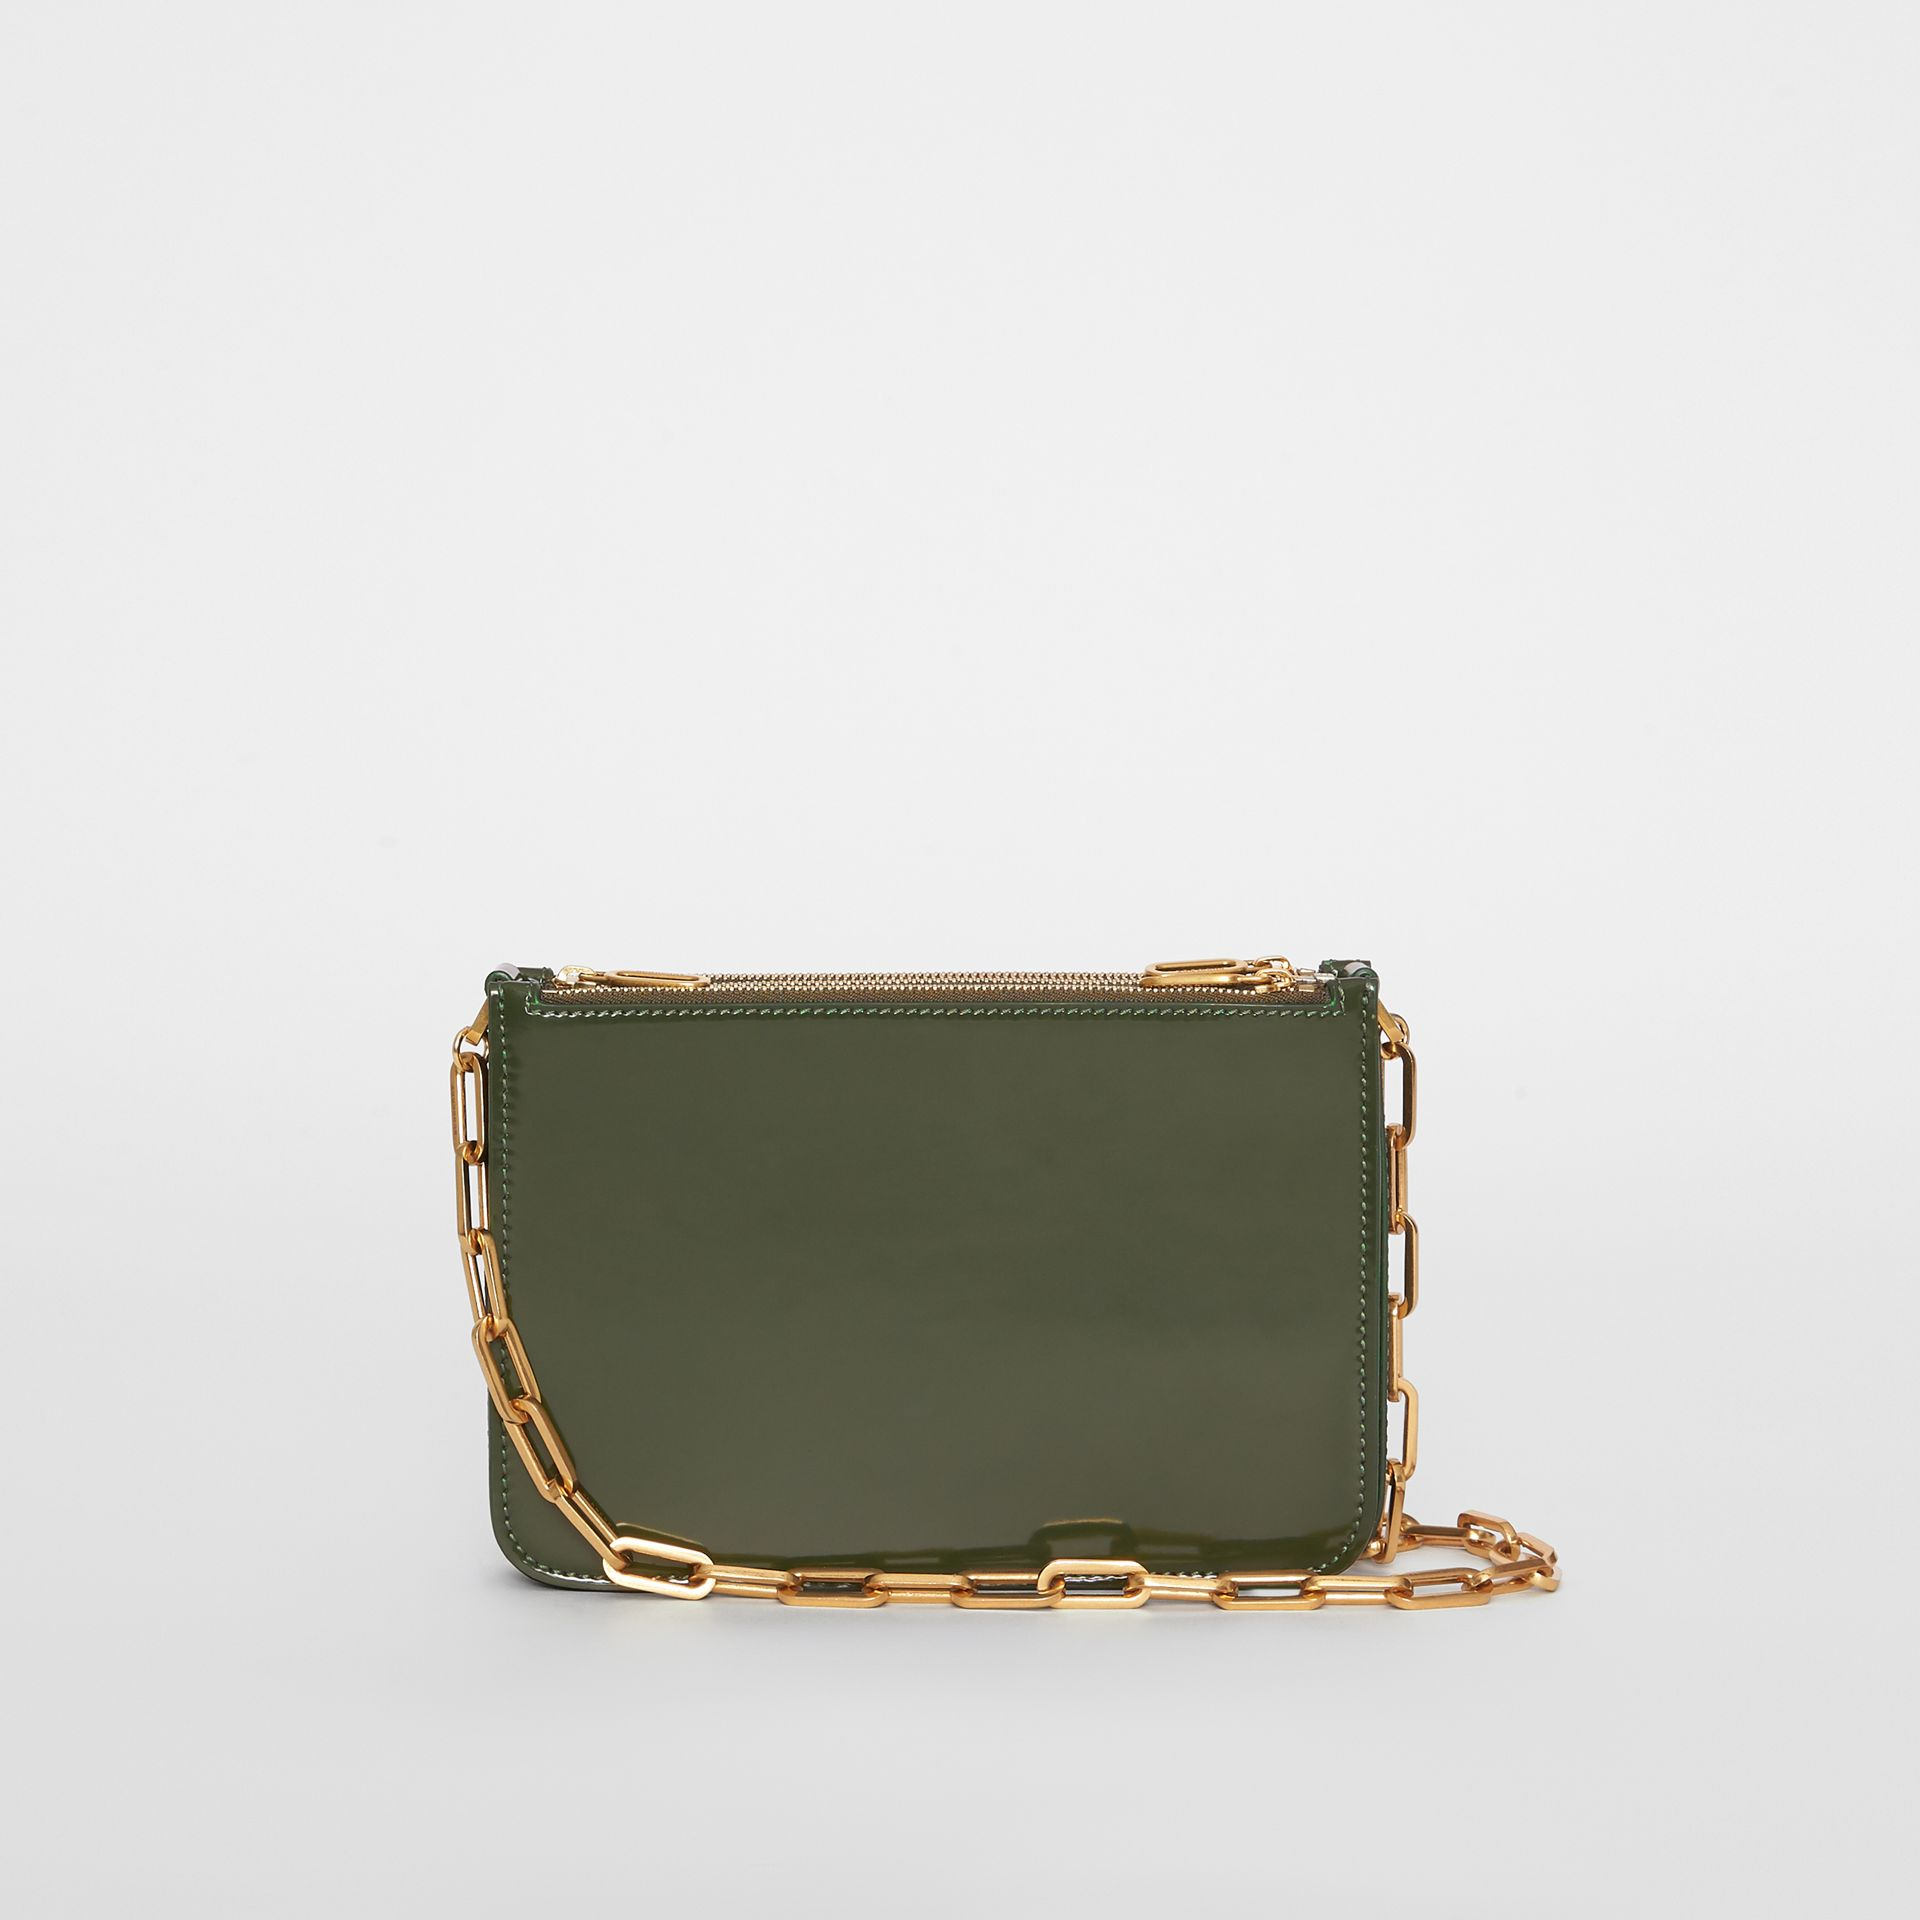 Triple Zip Patent Leather Crossbody Bag in Dark Forest Green - Women | Burberry United States - gallery image 5